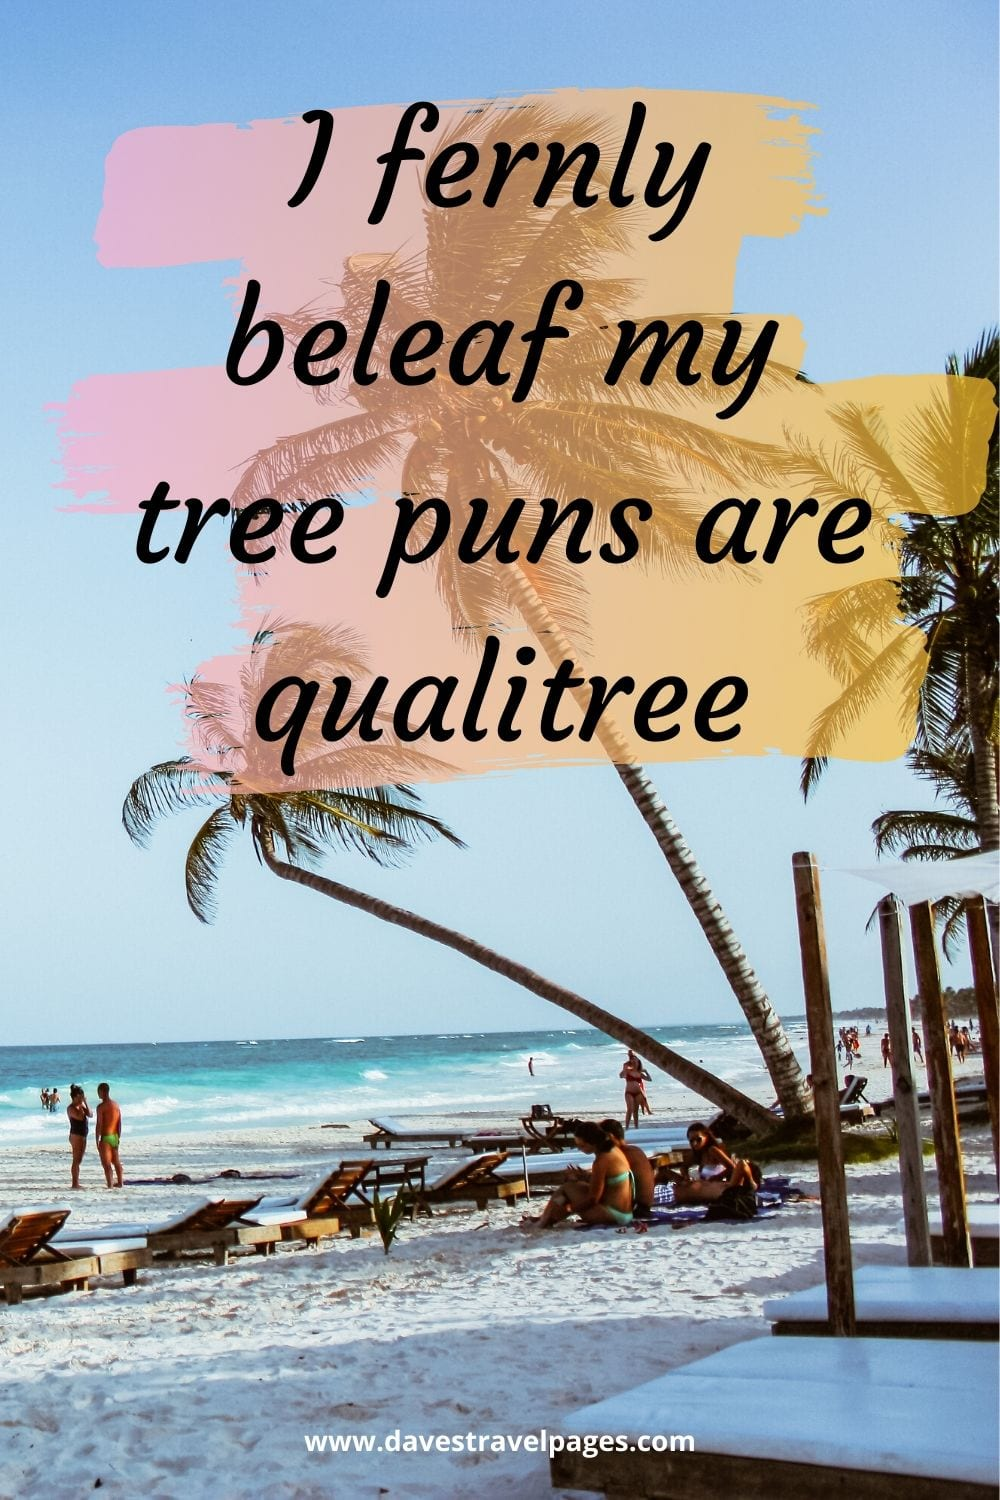 """Funny nature captions: """"I fernly beleaf my tree puns are qualitree."""""""